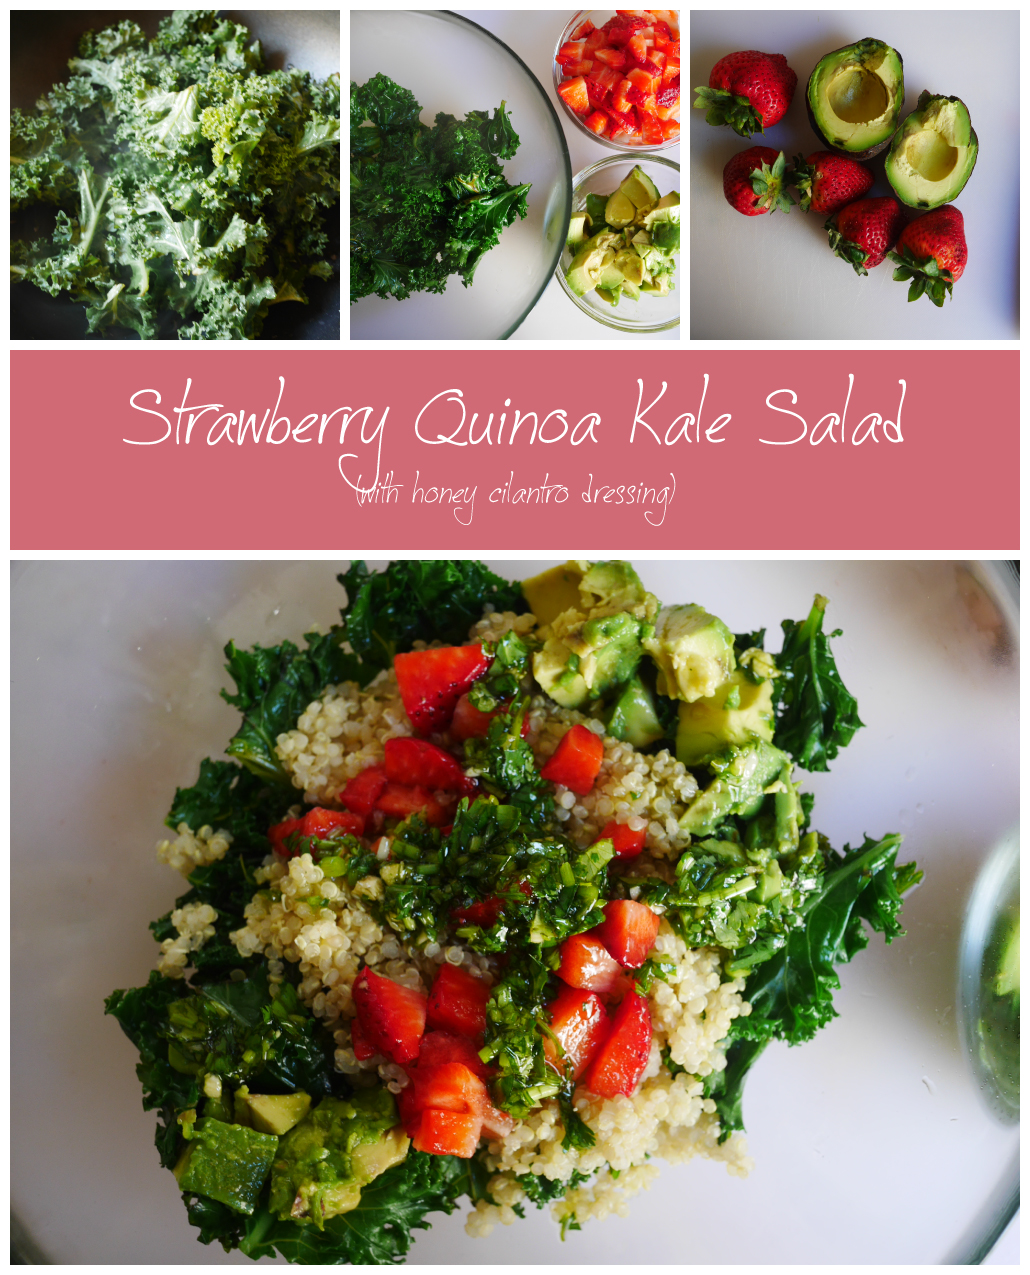 Strawberry Quinoa Kale Salad